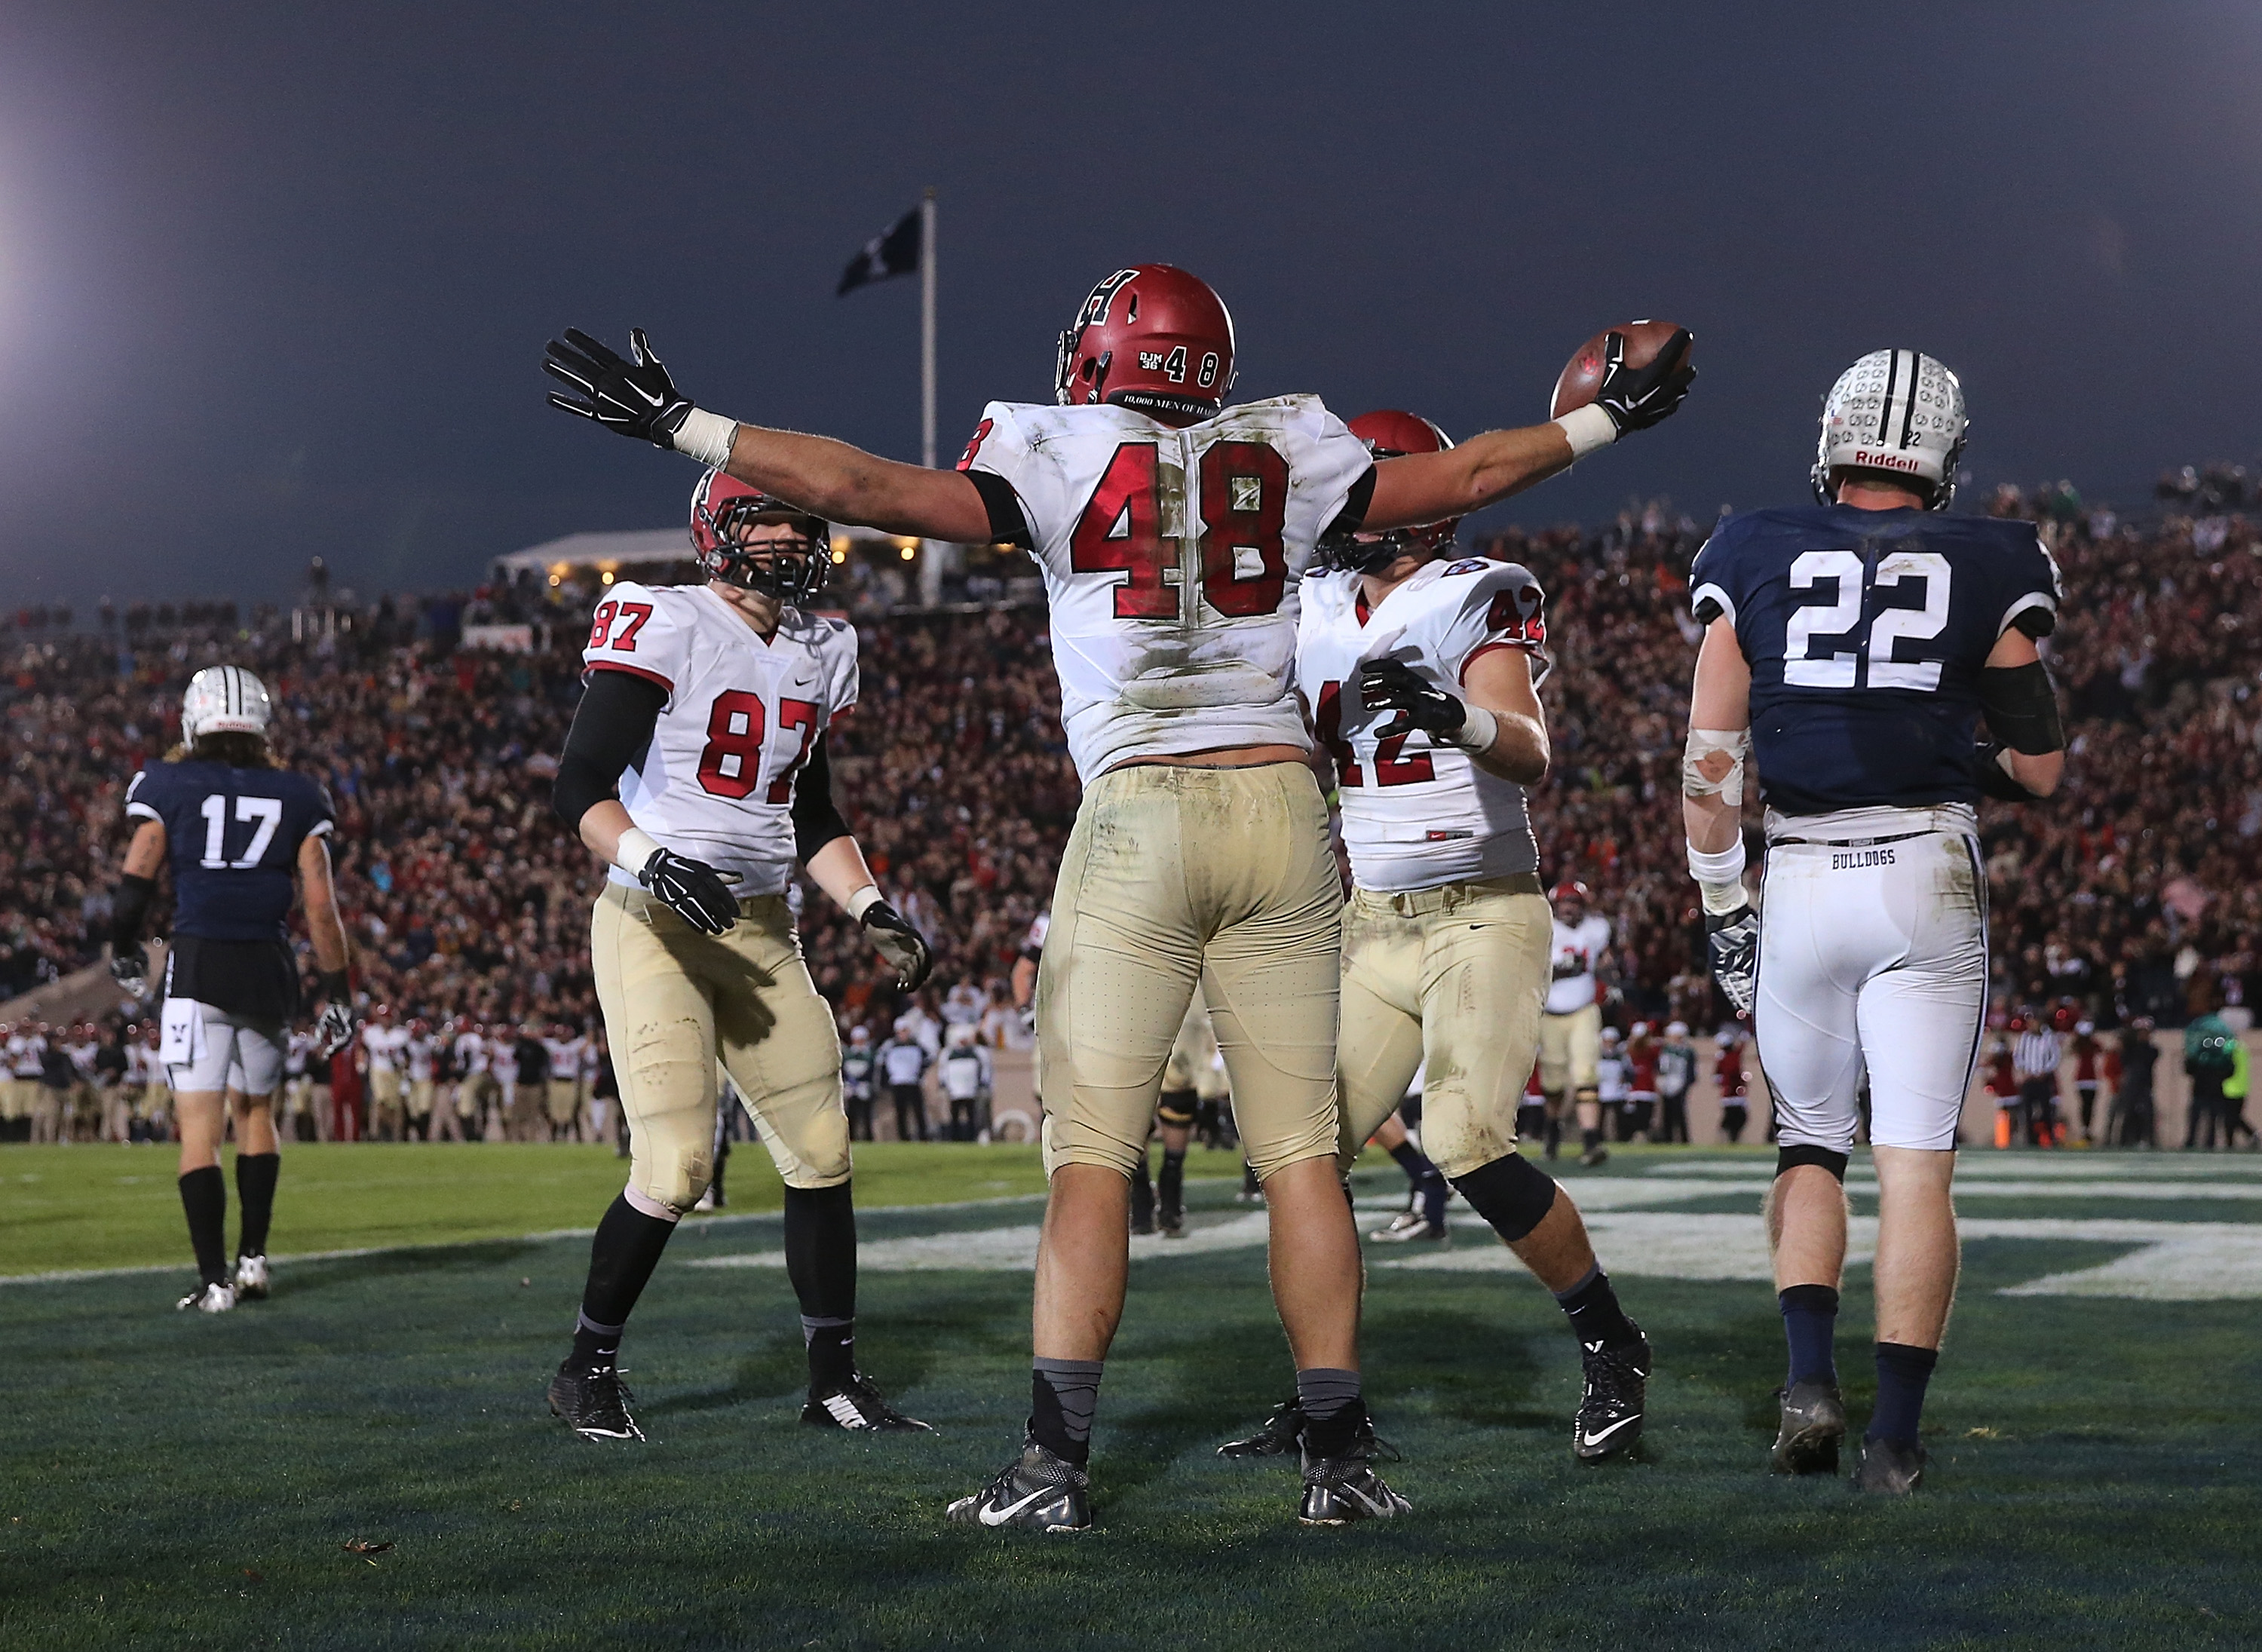 Ben Braunecker (48) celebrates after catching a touchdown against Yale.